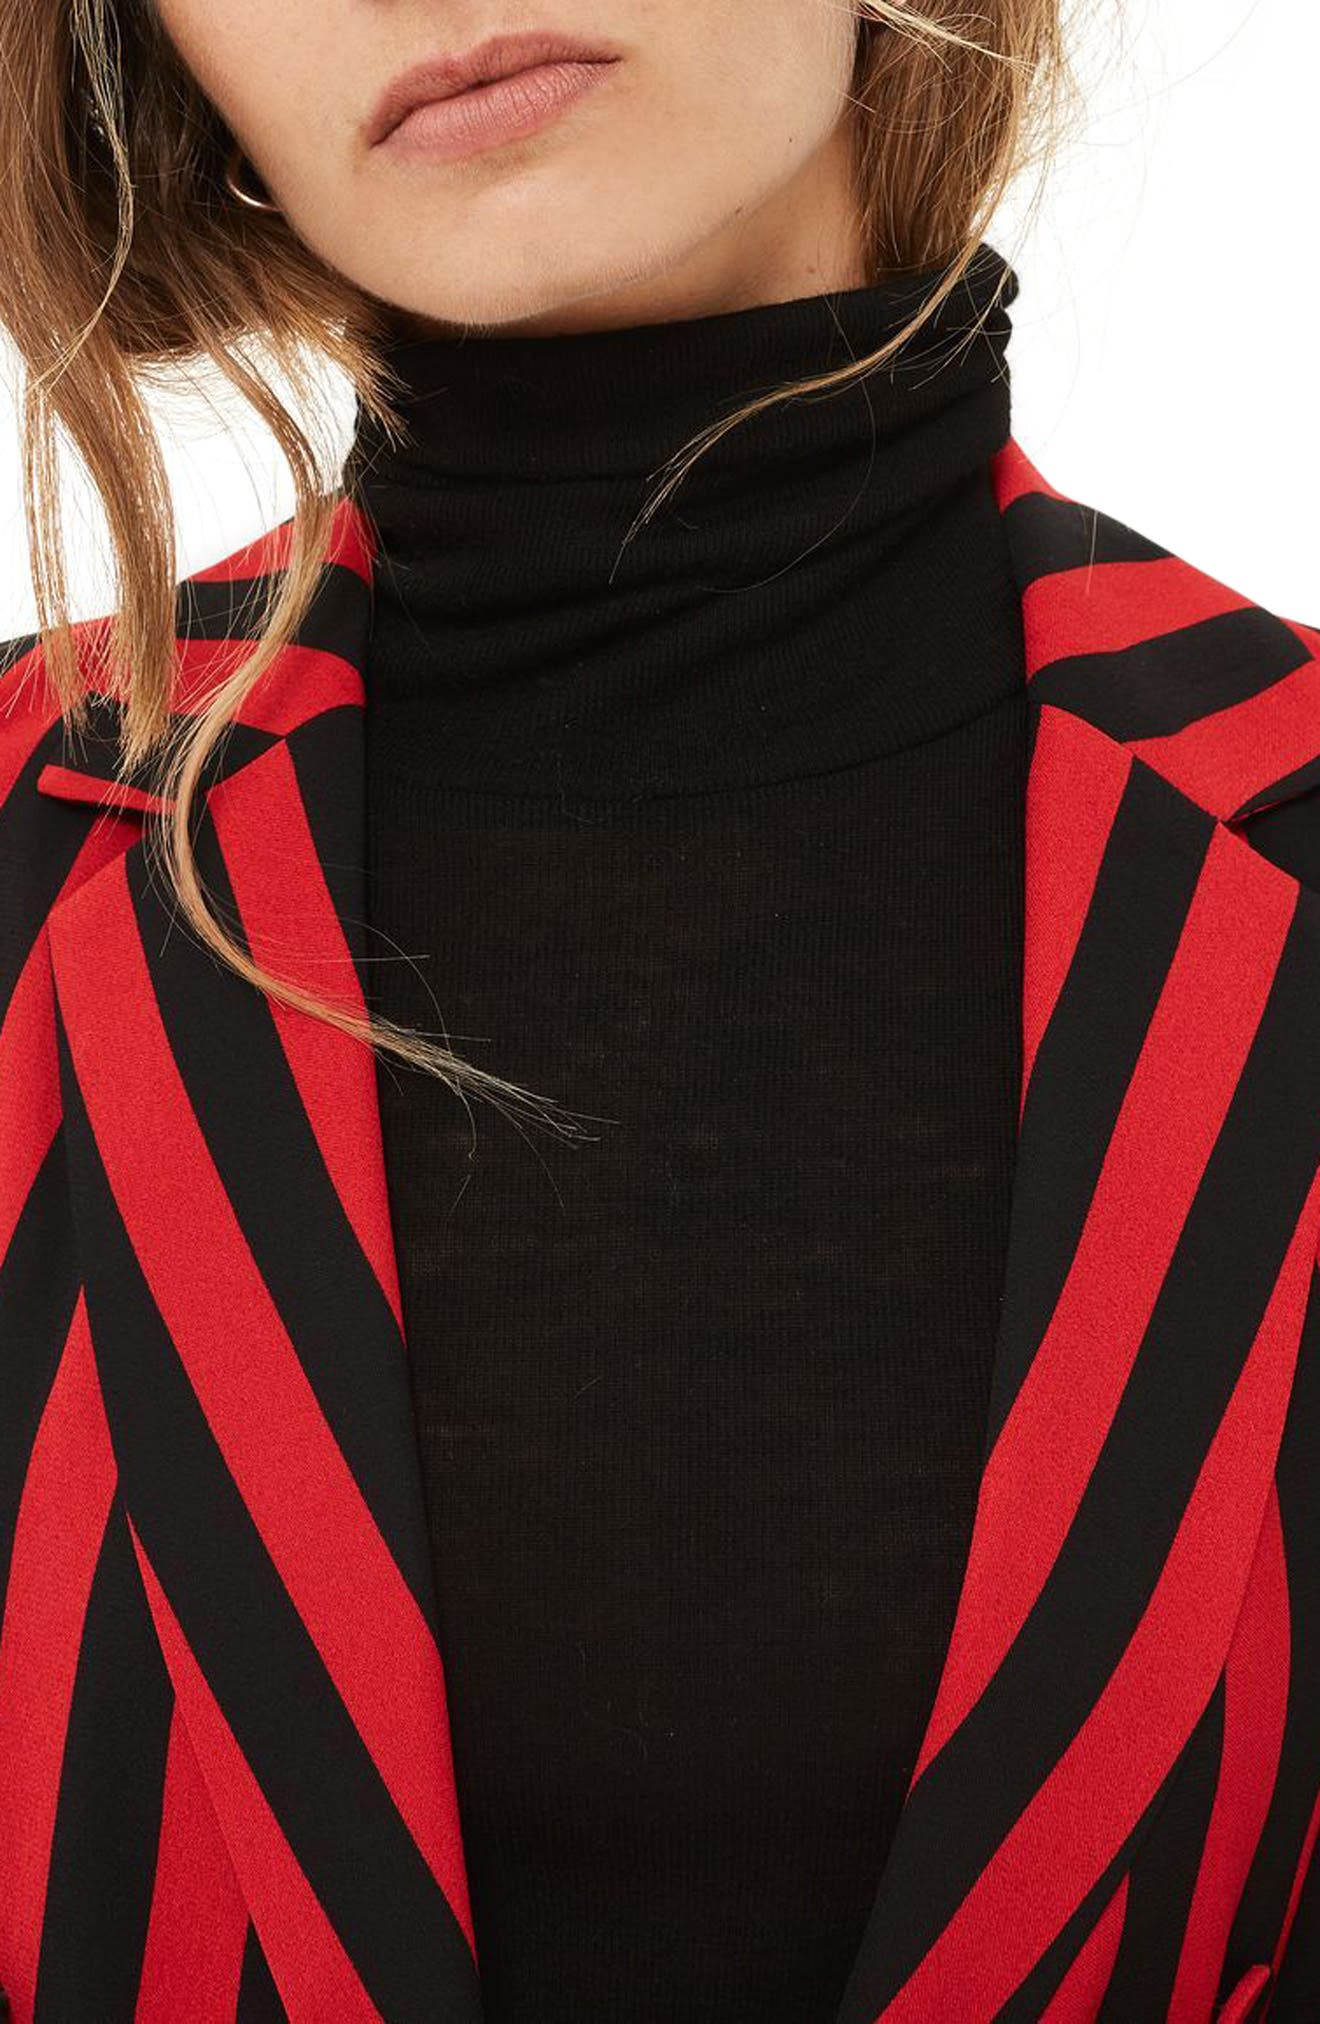 Humbug Stripe Double Breasted Blazer,                             Alternate thumbnail 3, color,                             601